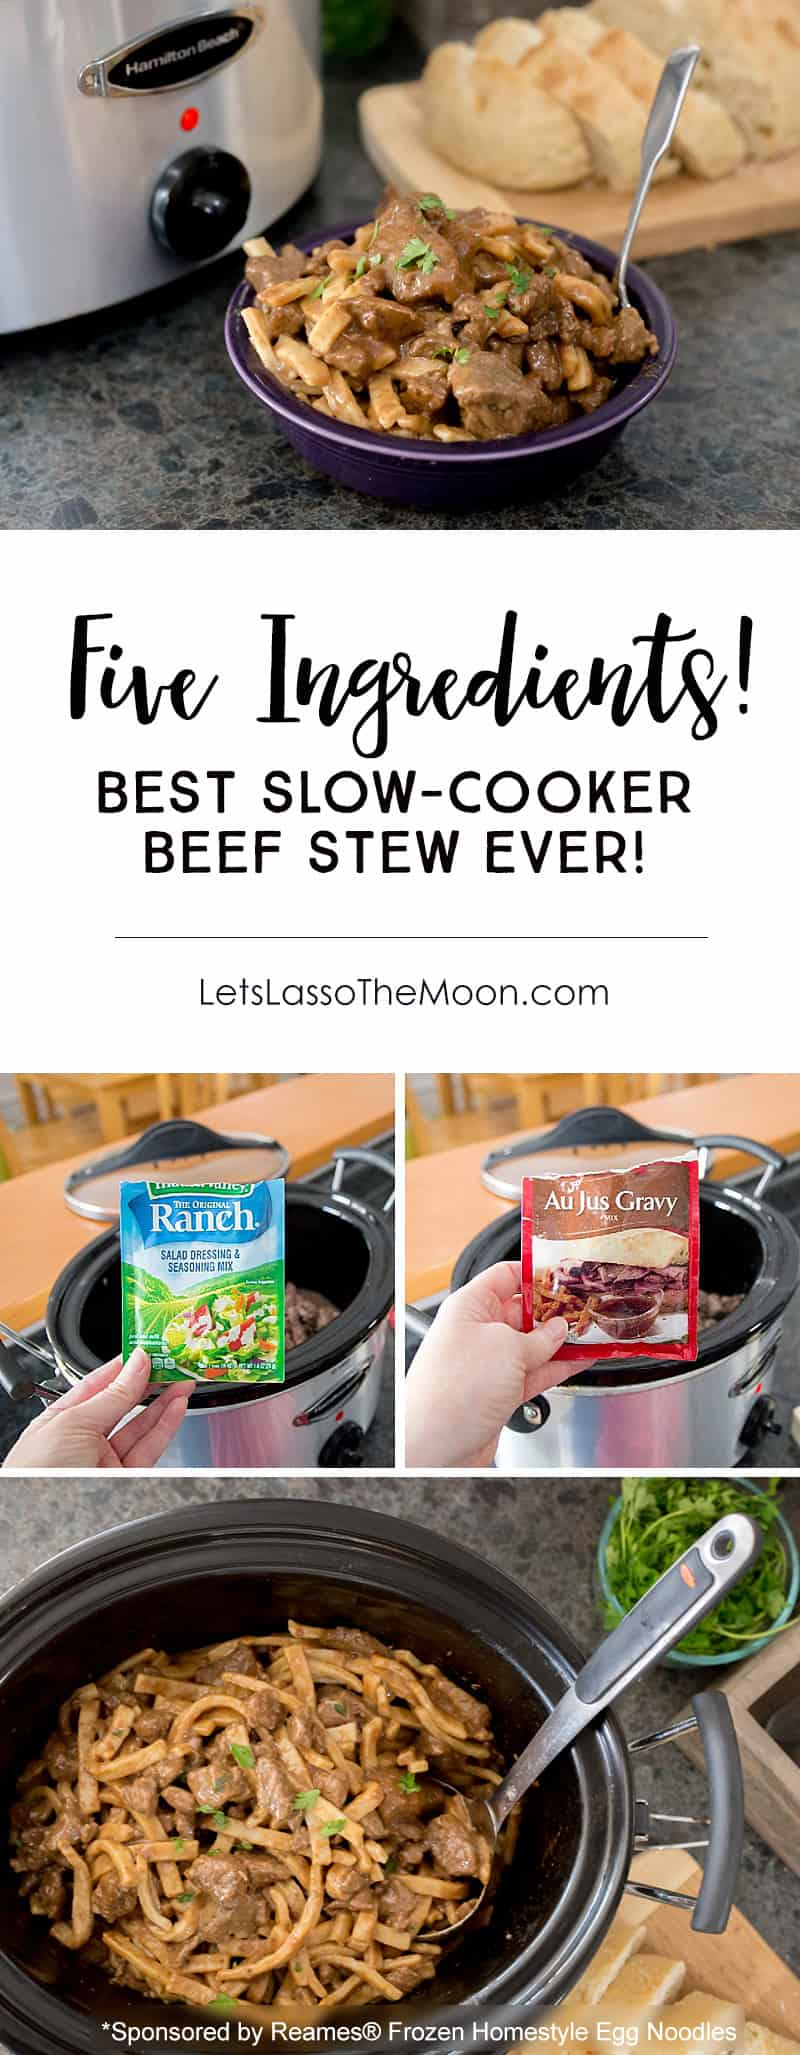 The flavorful Slow Cooker Beef Stew is a super easy weekday dinner recipe, but is also perfect for a family get together. This classic crock pot recipe is transformed with a few unexpected ingredients (Hint: it is not what you expect). Served with frozen egg noodles, it is the perfect winter meal. Comfort in a bowl. *My family REALLY liked this one! Plus, I love that it hardly requires any chopping.